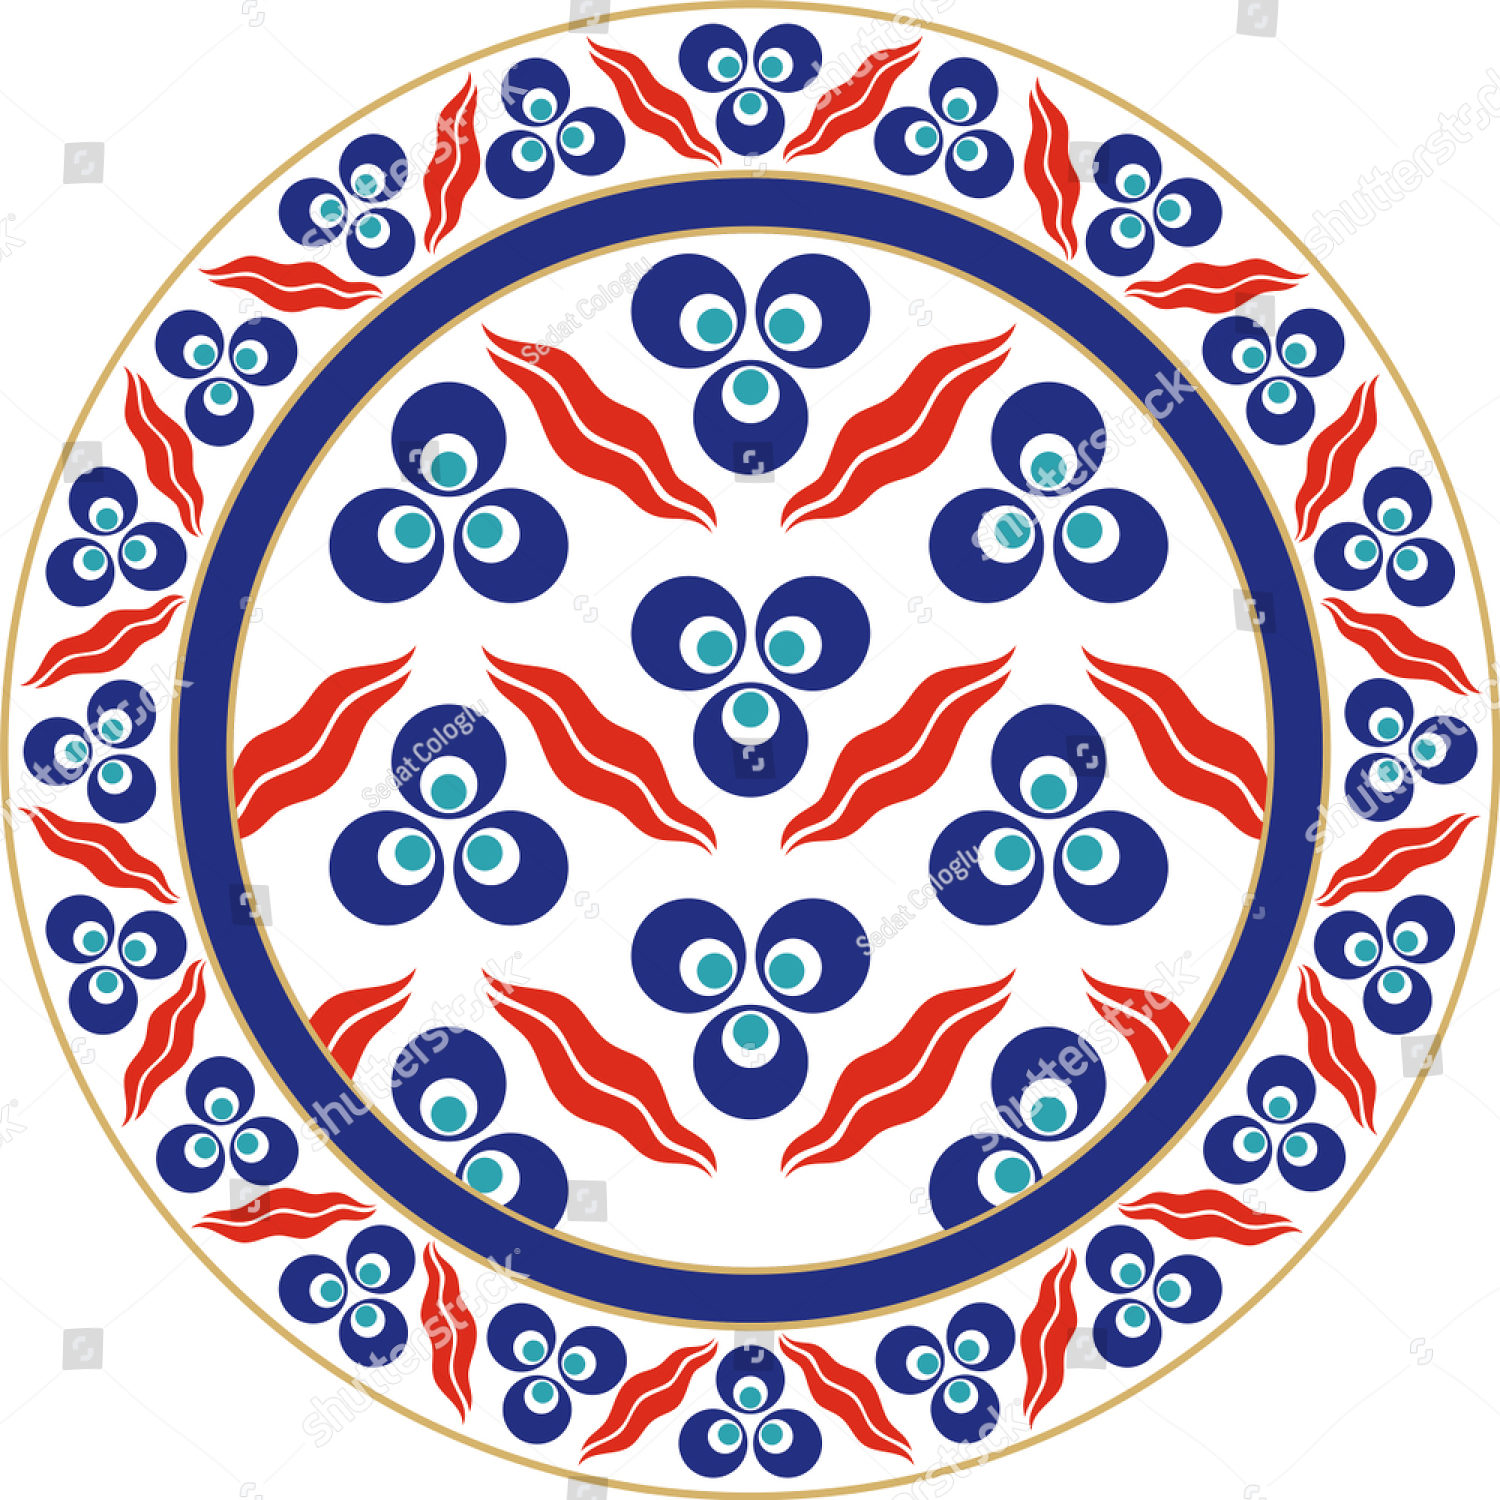 stock-vector-vector-drawing-for-ceramic-plate-it-is-mostly-prepared-with-blue-red-and-white-colors-ottoman-1249982674